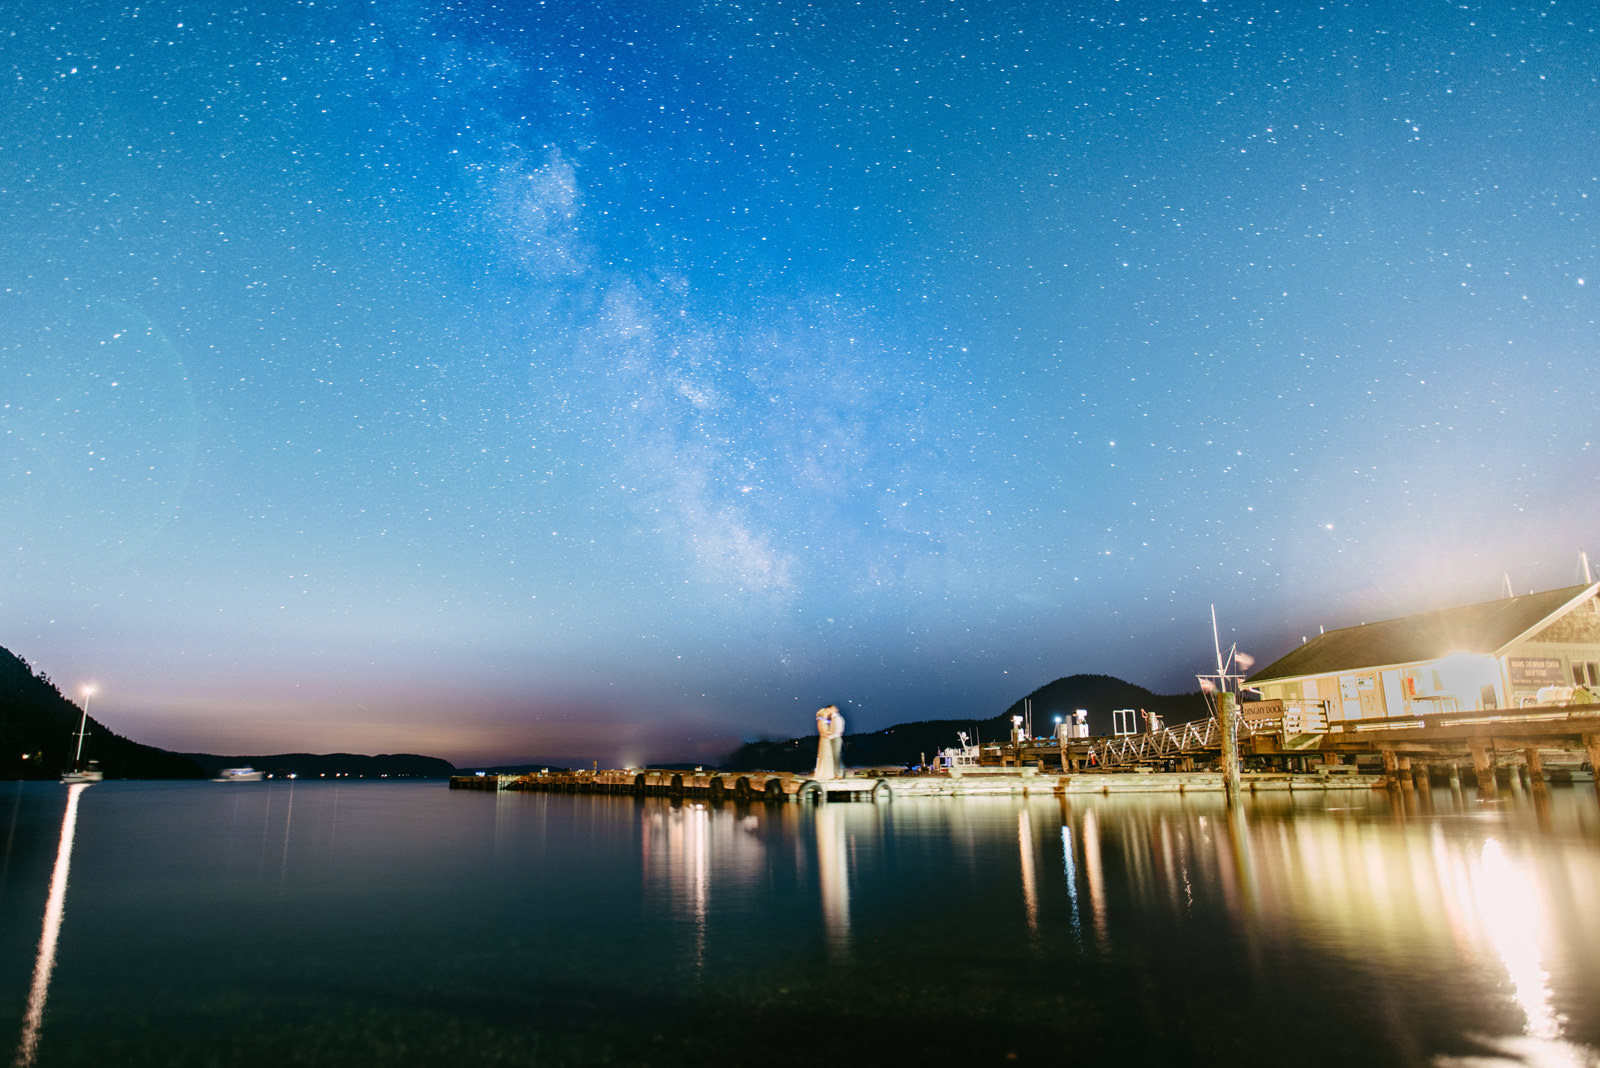 256-long-exposure-night-wedding-photo-on-orcas-island-by-ryan-flynn.jpg